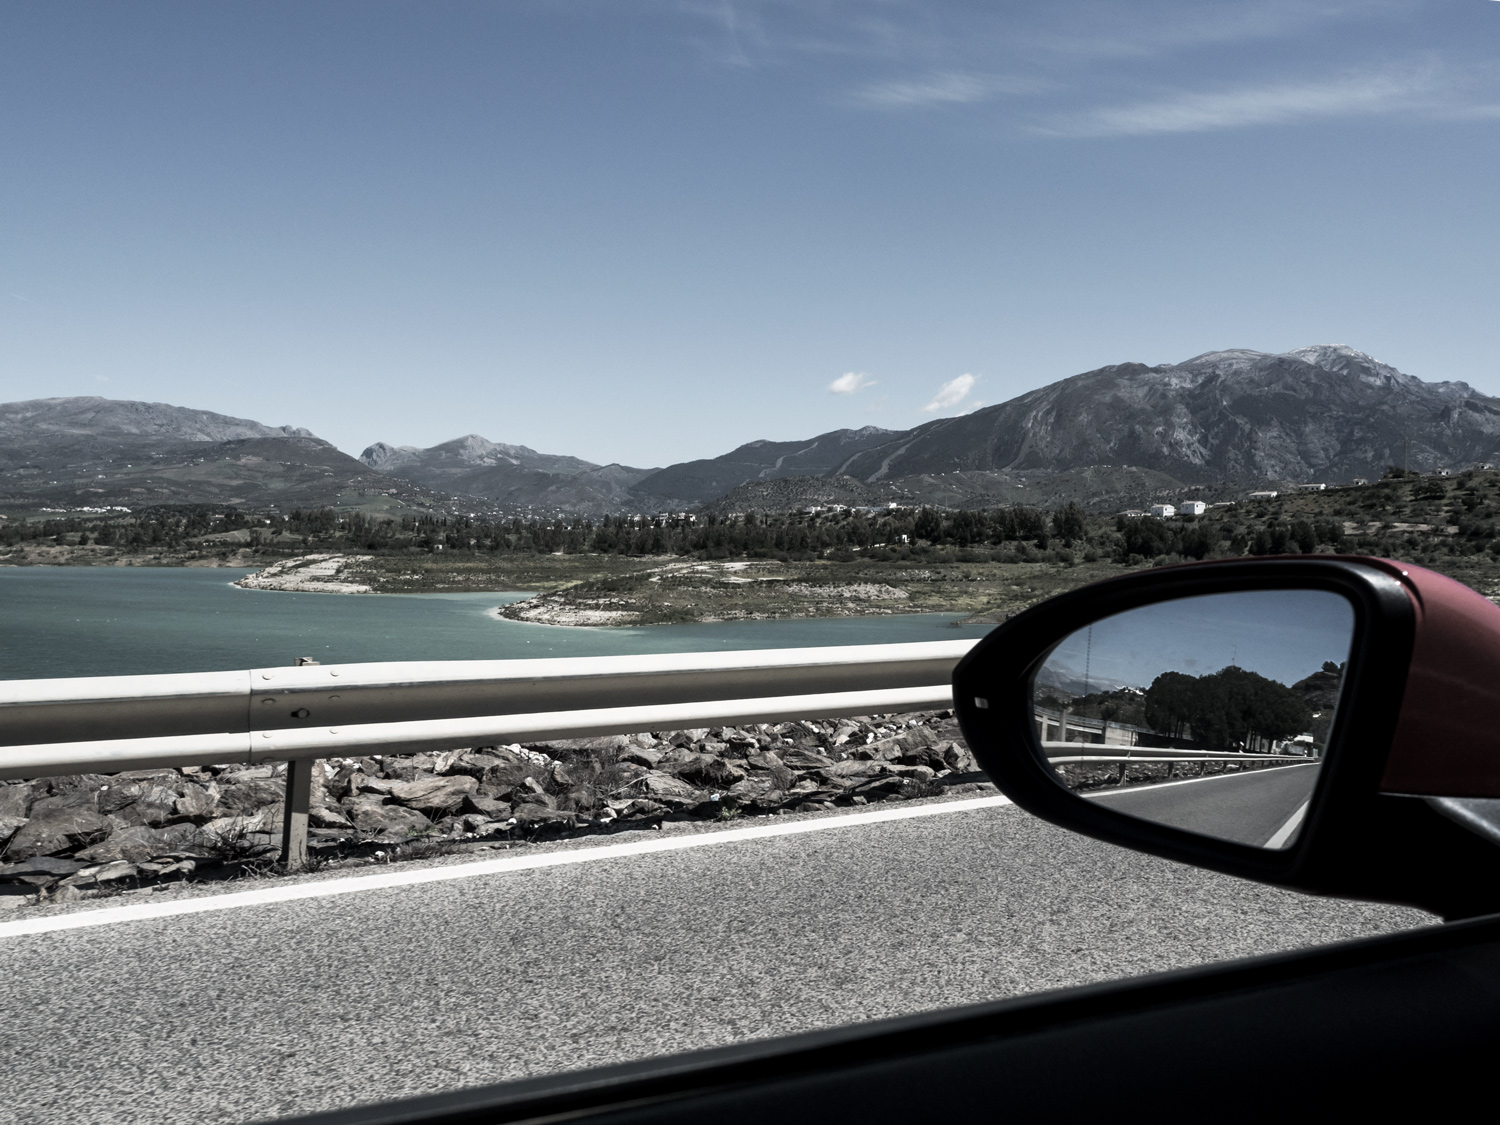 street, photography, car, mountains, lake, view, holidays